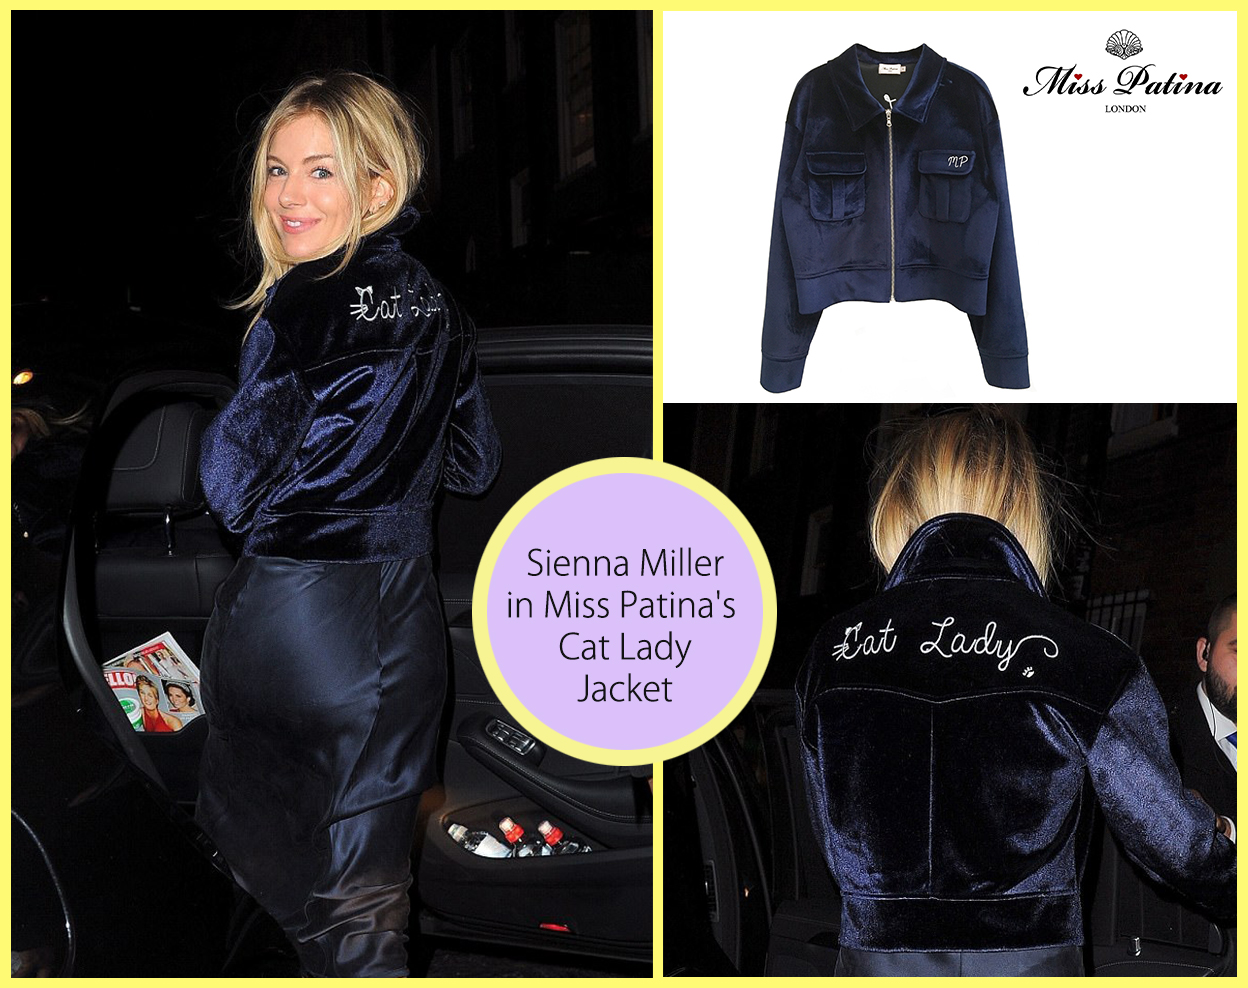 Spotted! Actress Sienna Miller in Cat Lady Jacket!